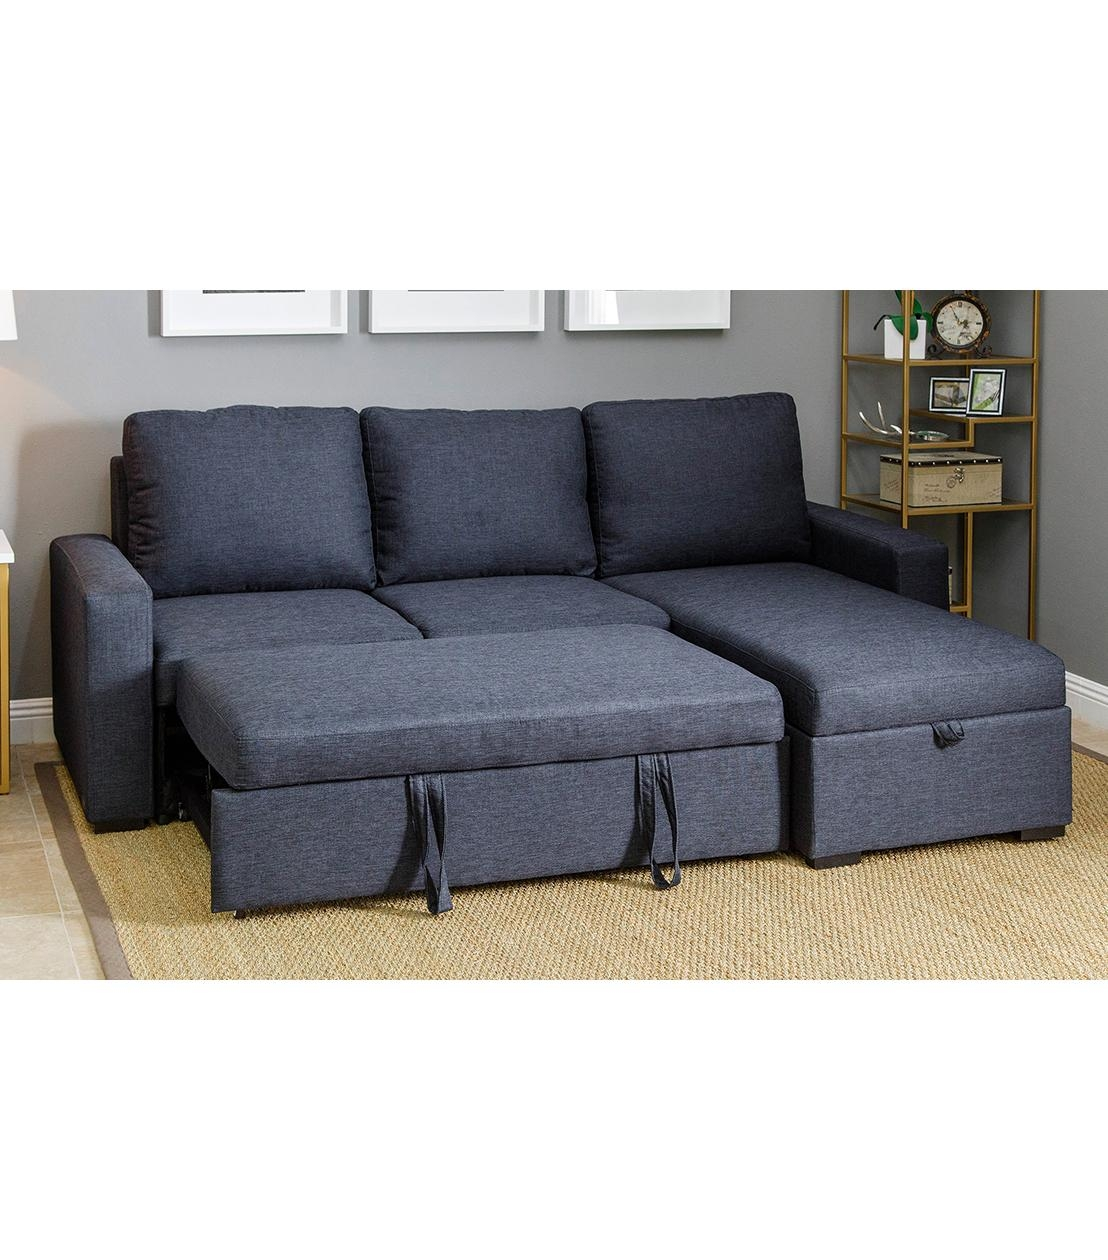 Sectionals Intended For Abbyson Sectional Sofa (View 7 of 15)